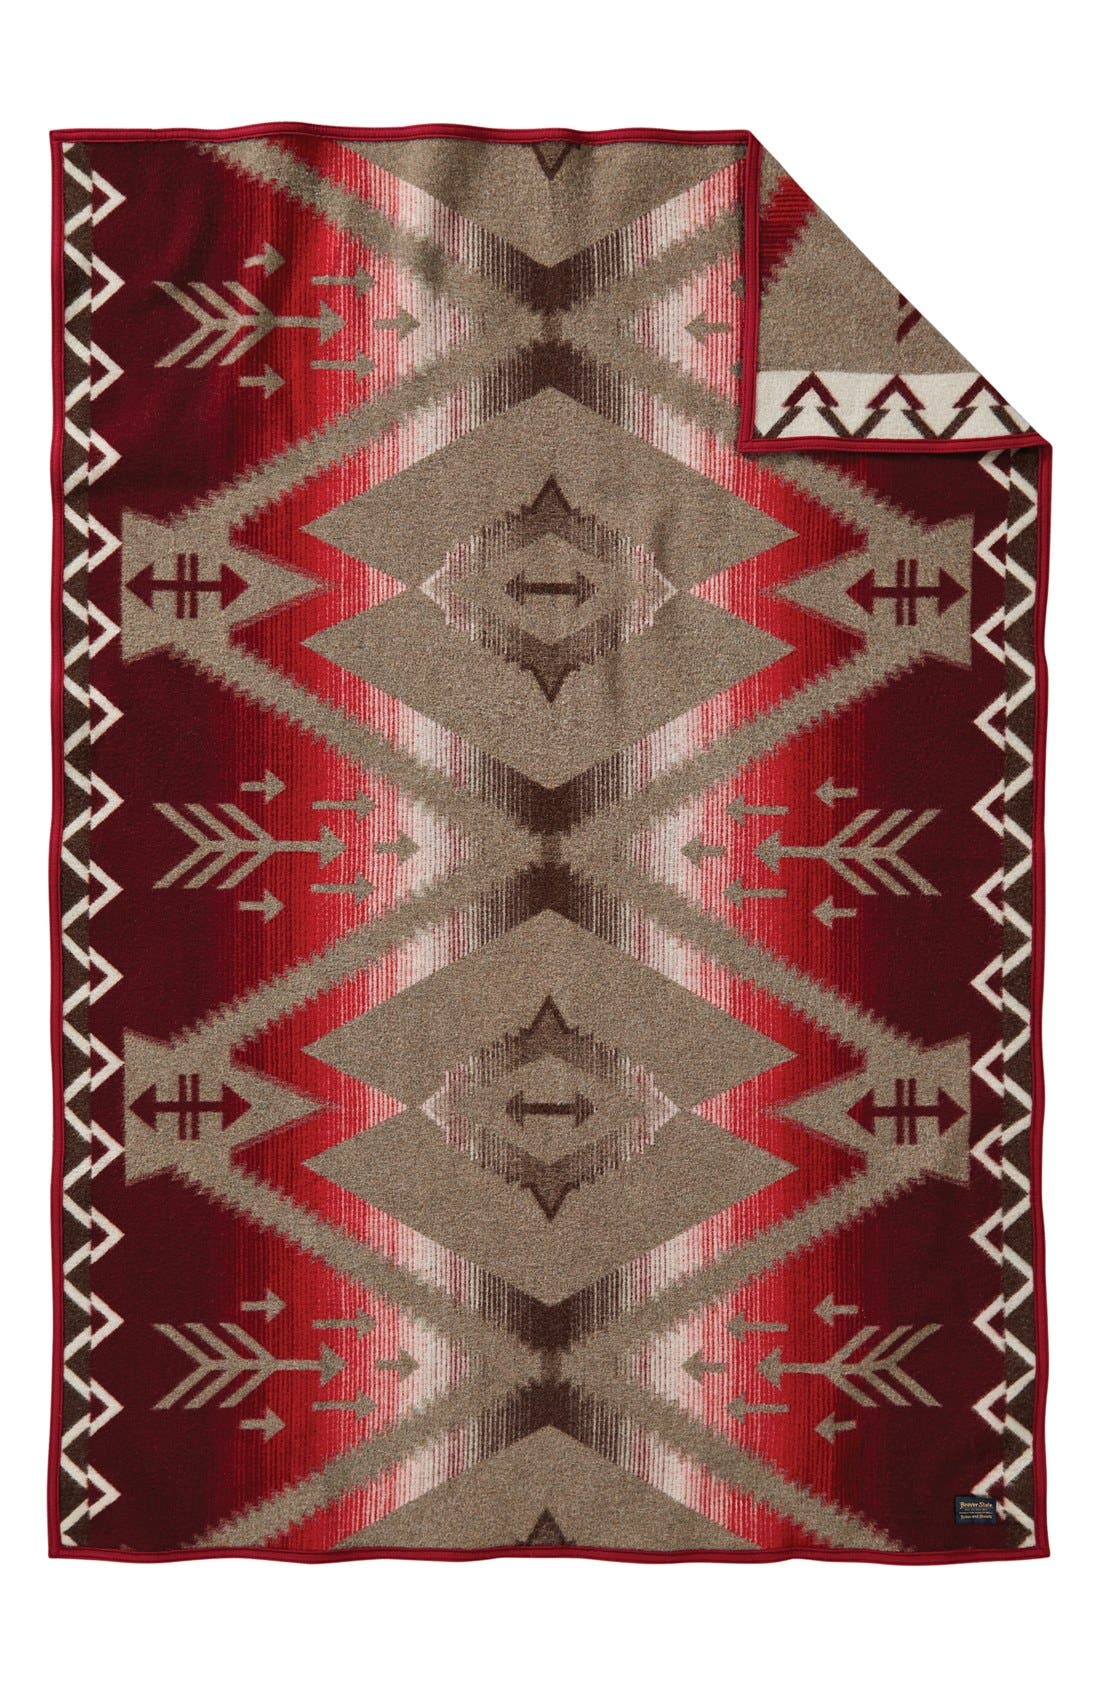 Atsila Jacquard Throw,                         Main,                         color, Atsila